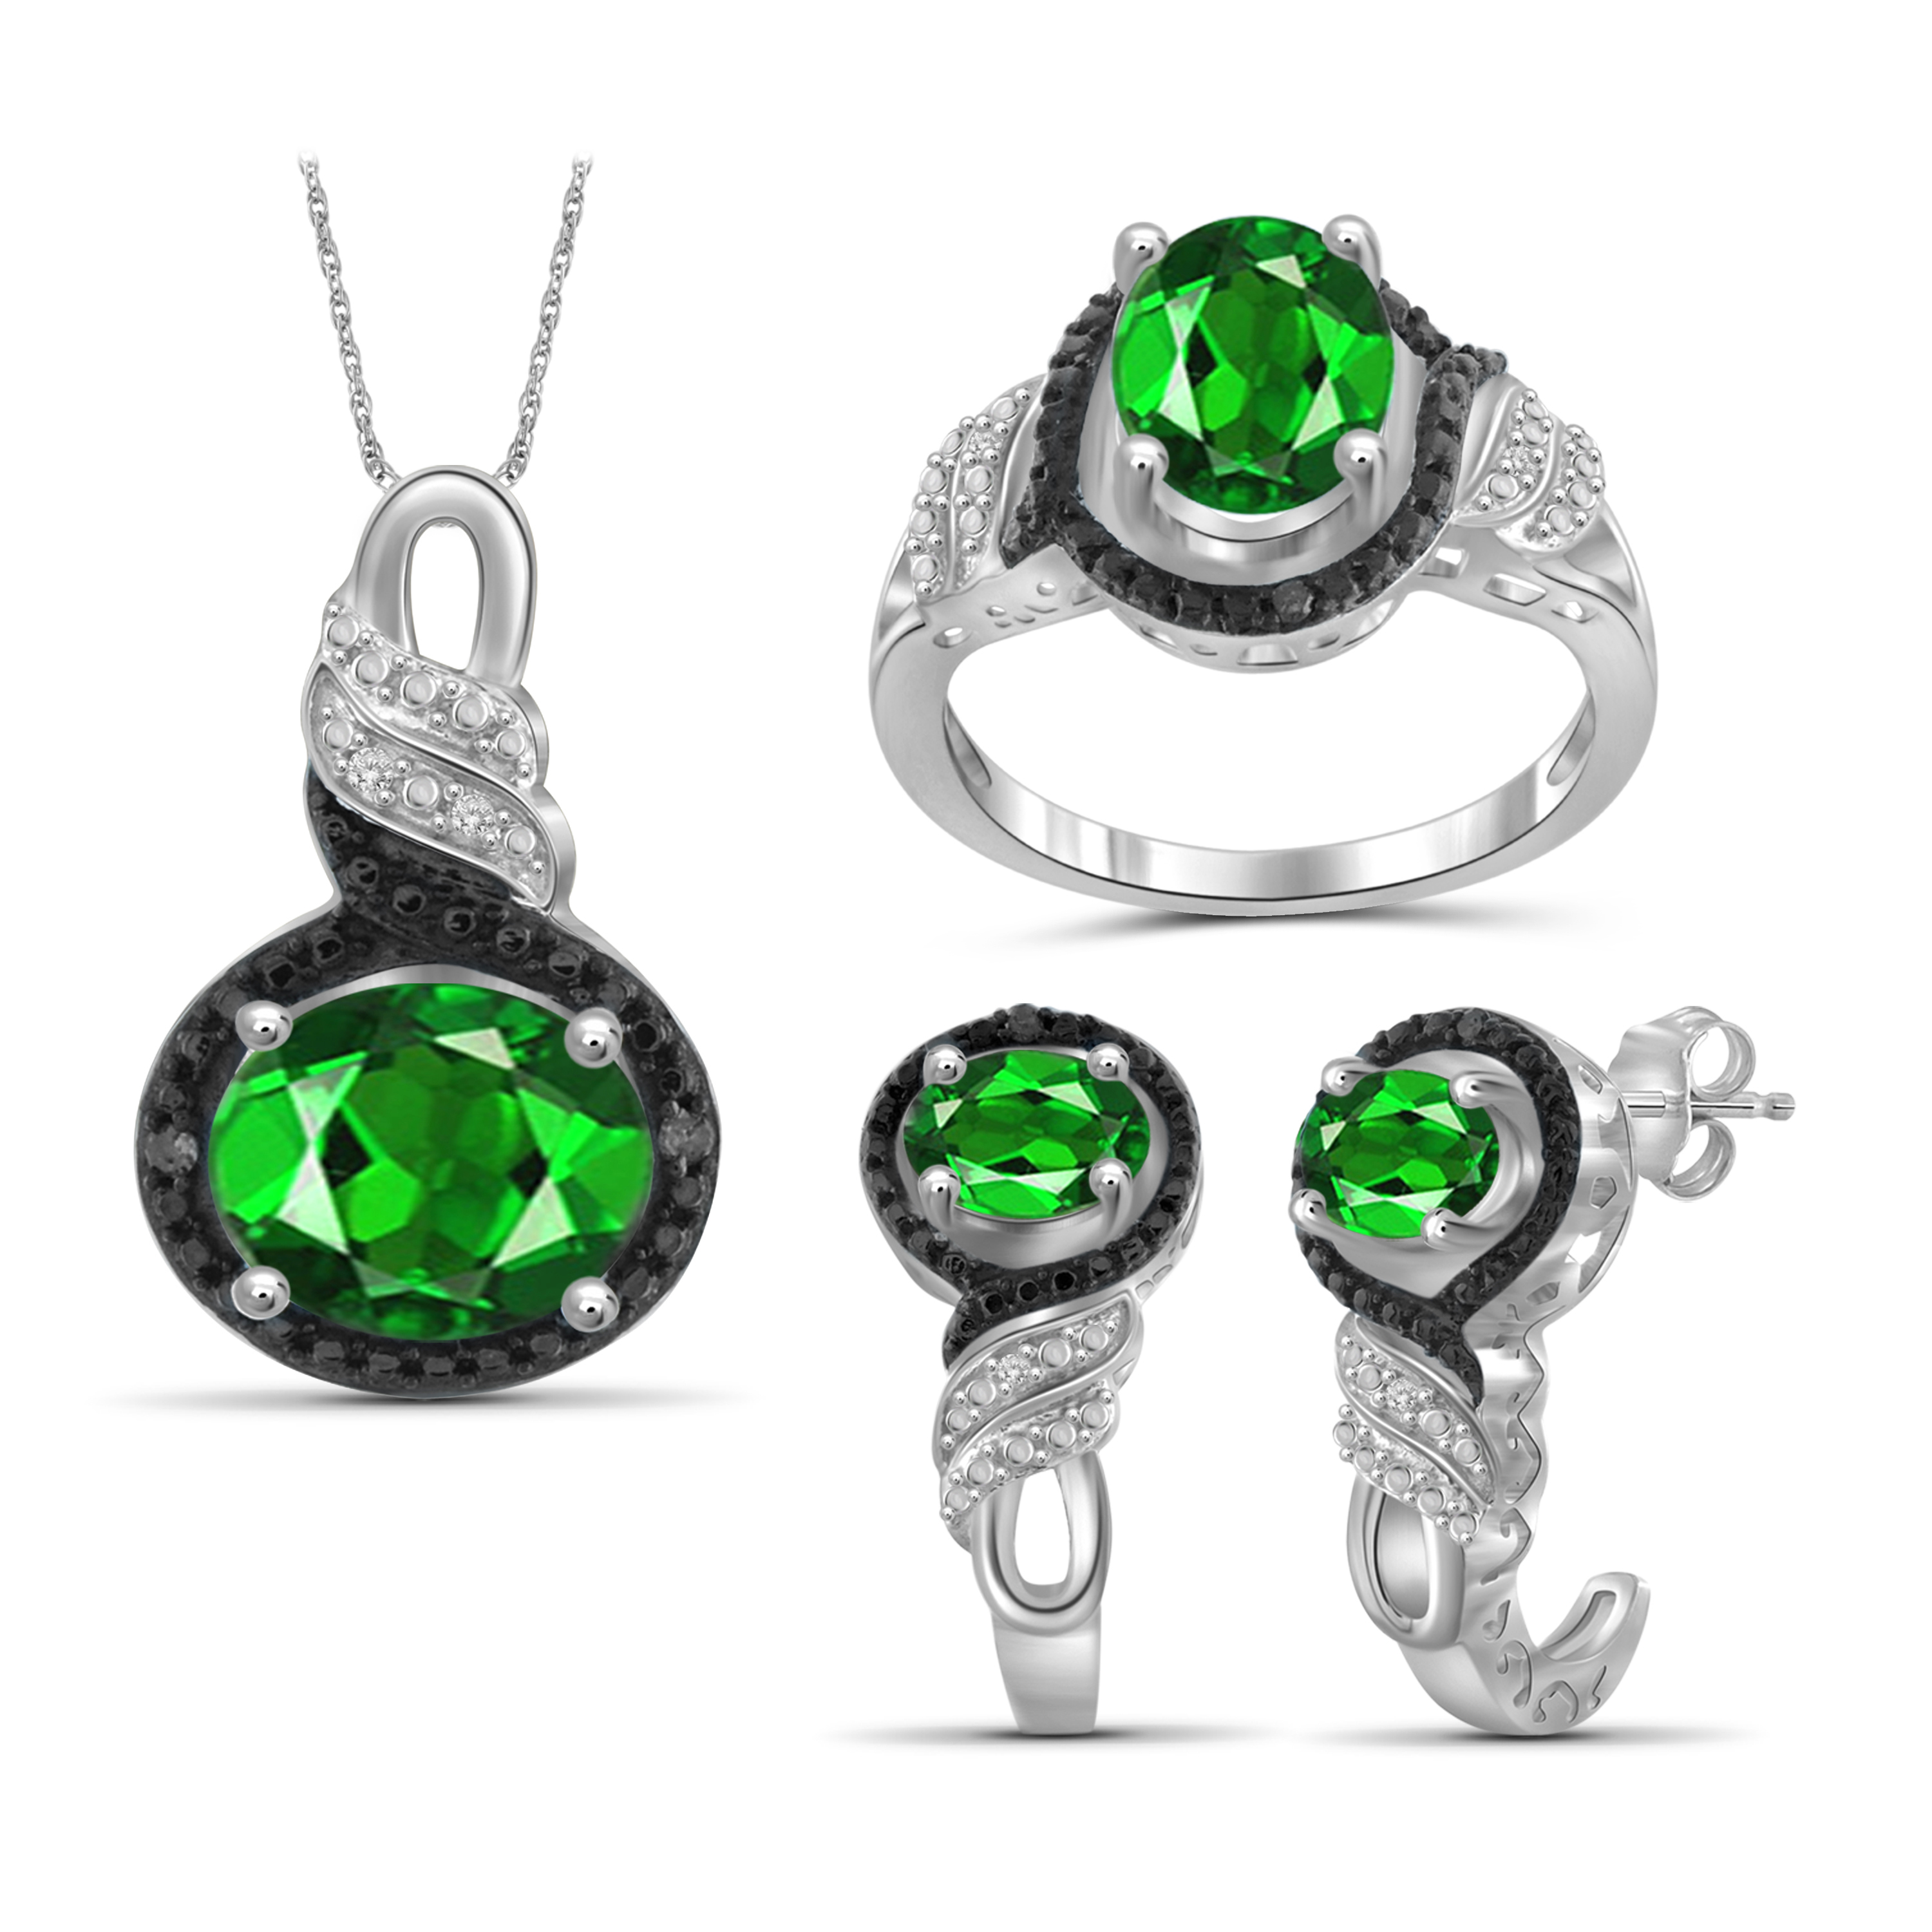 JewelersClub 4 1/5 Carat T.G.W. Chrome Diopside And Black & White Diamond Accent Sterling Silver 3-Piece Jewelry set